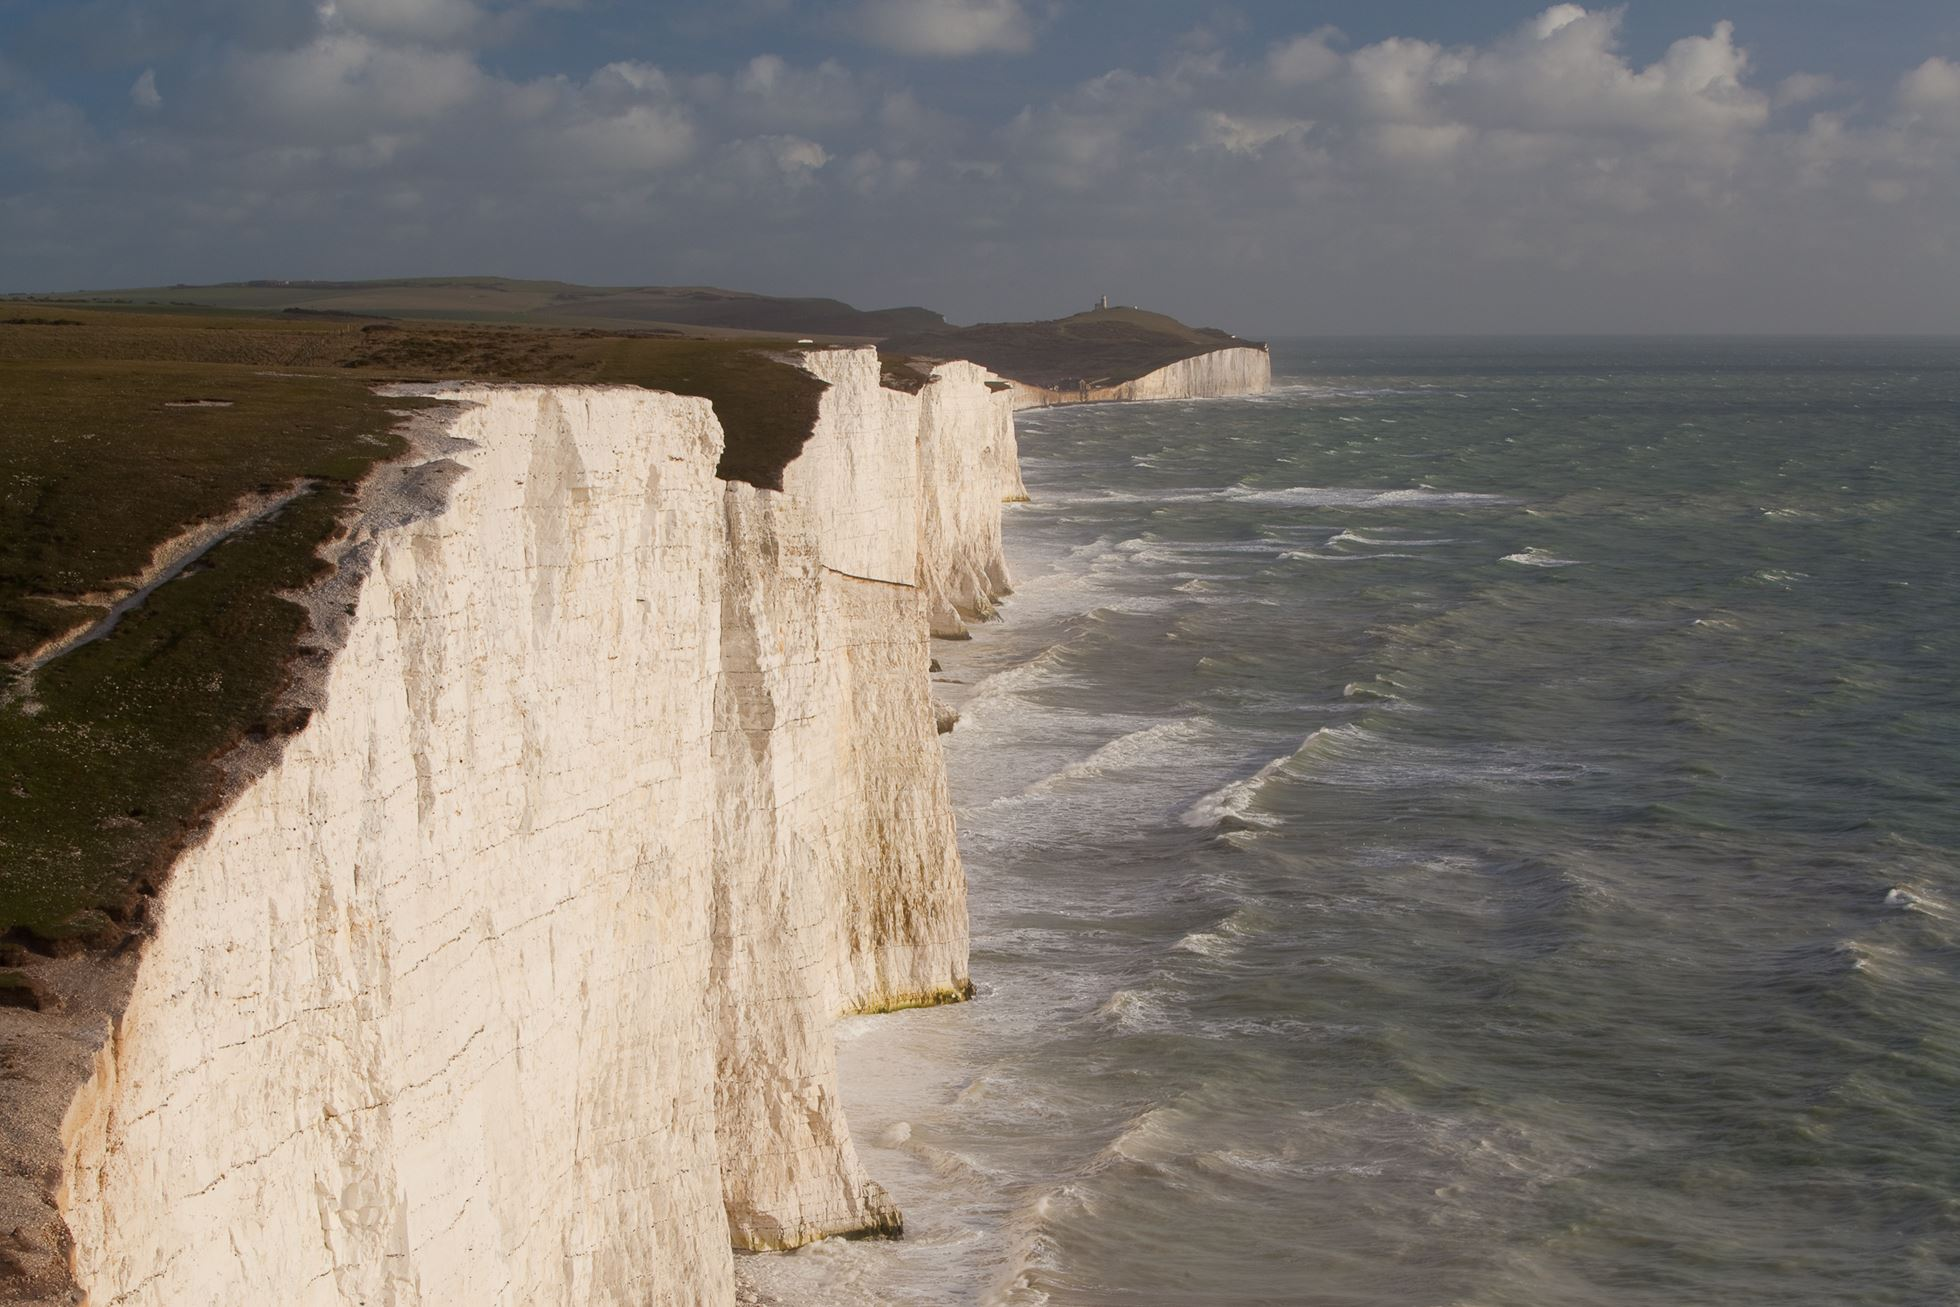 Seven Sisters chalk cliffs, South Downs, England.